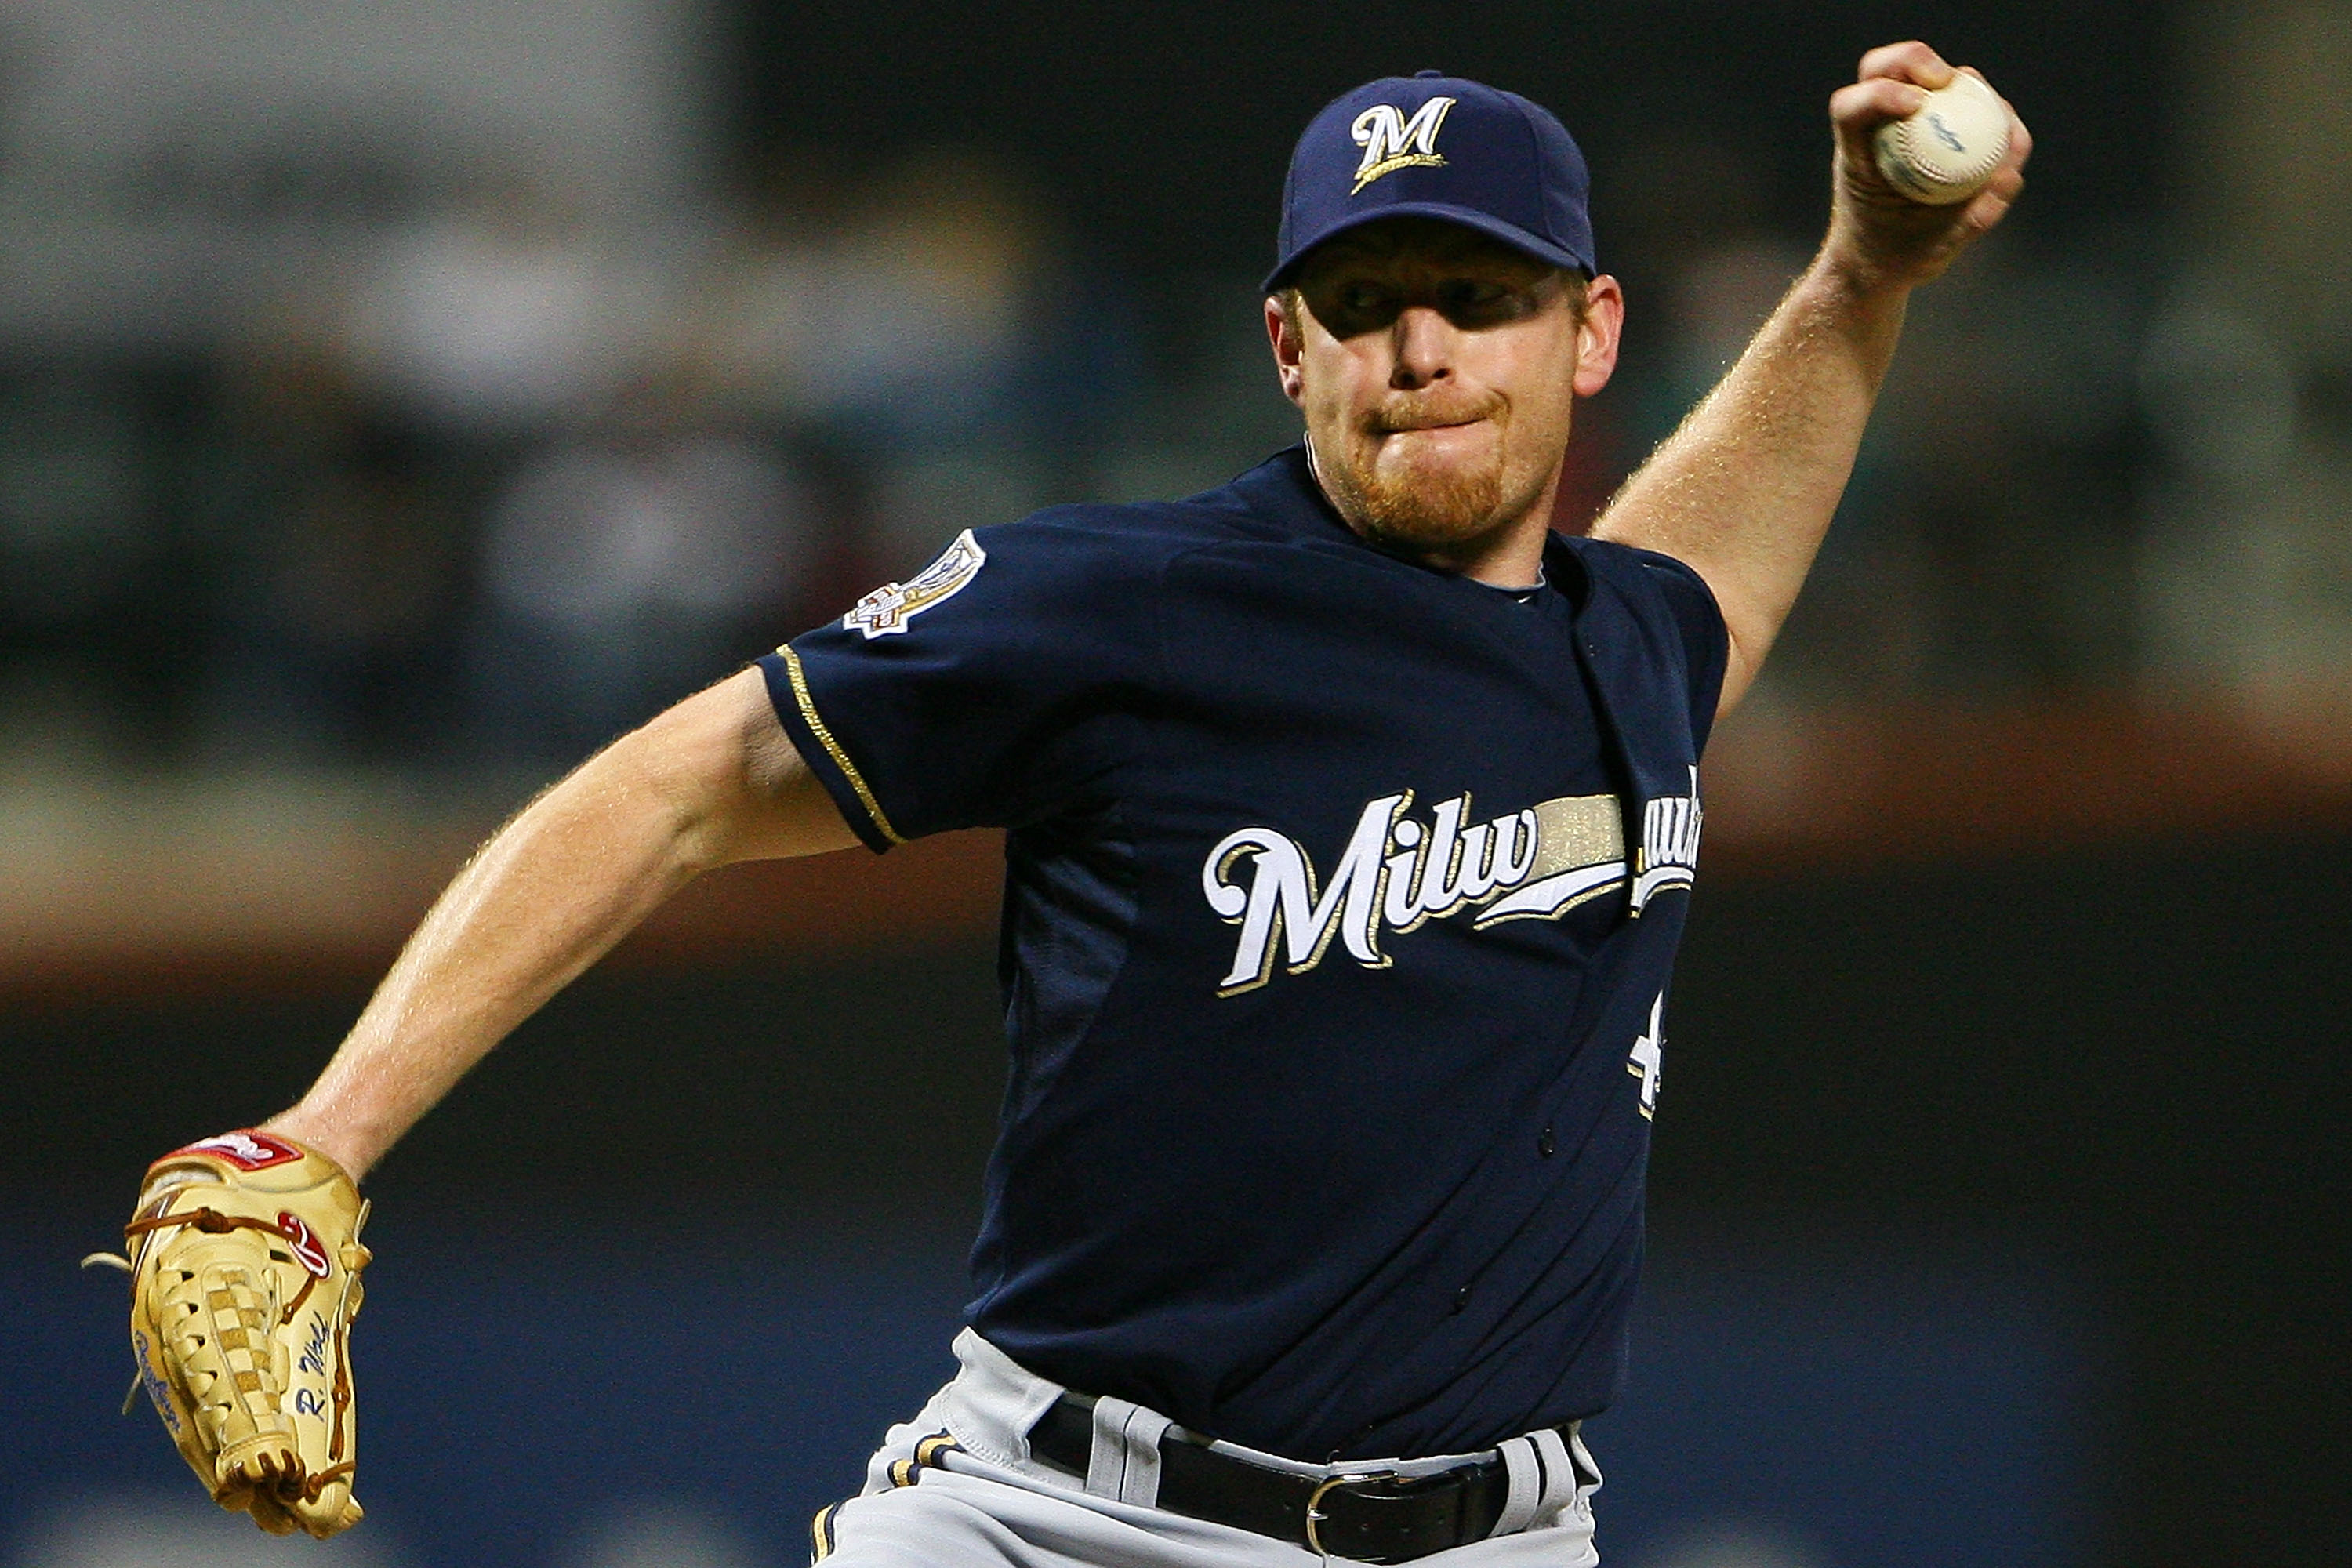 NEW YORK - SEPTEMBER 28:  Randy Wolf #43 of the Milwaukee Brewers pitches against the New York Mets on September 28, 2010 at Citi Field in the Flushing neighborhood of the Queens borough of New York City.  (Photo by Andrew Burton/Getty Images)